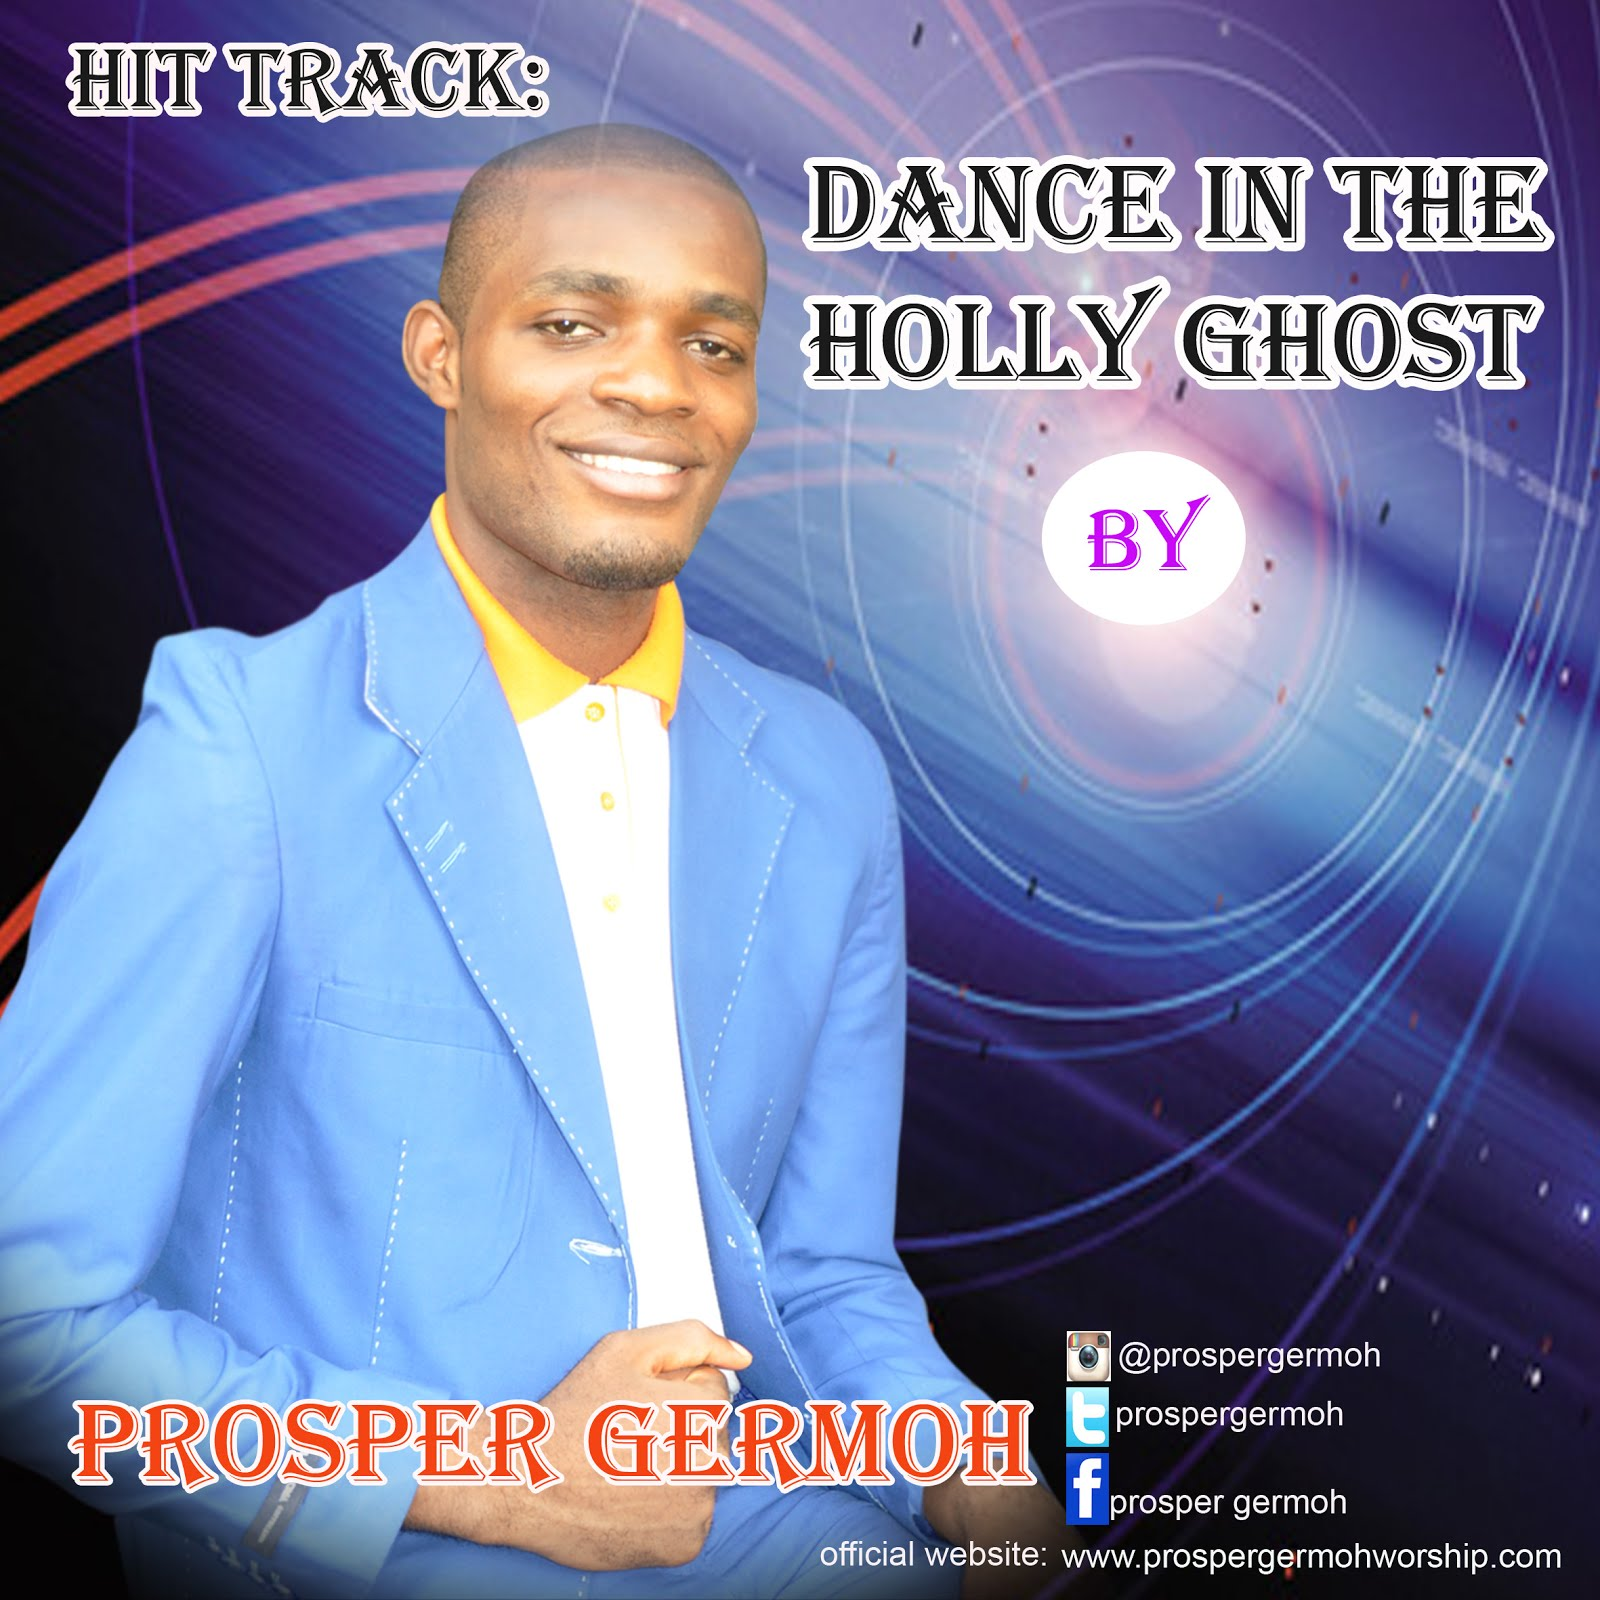 DANCE IN THE HOLY GHOST